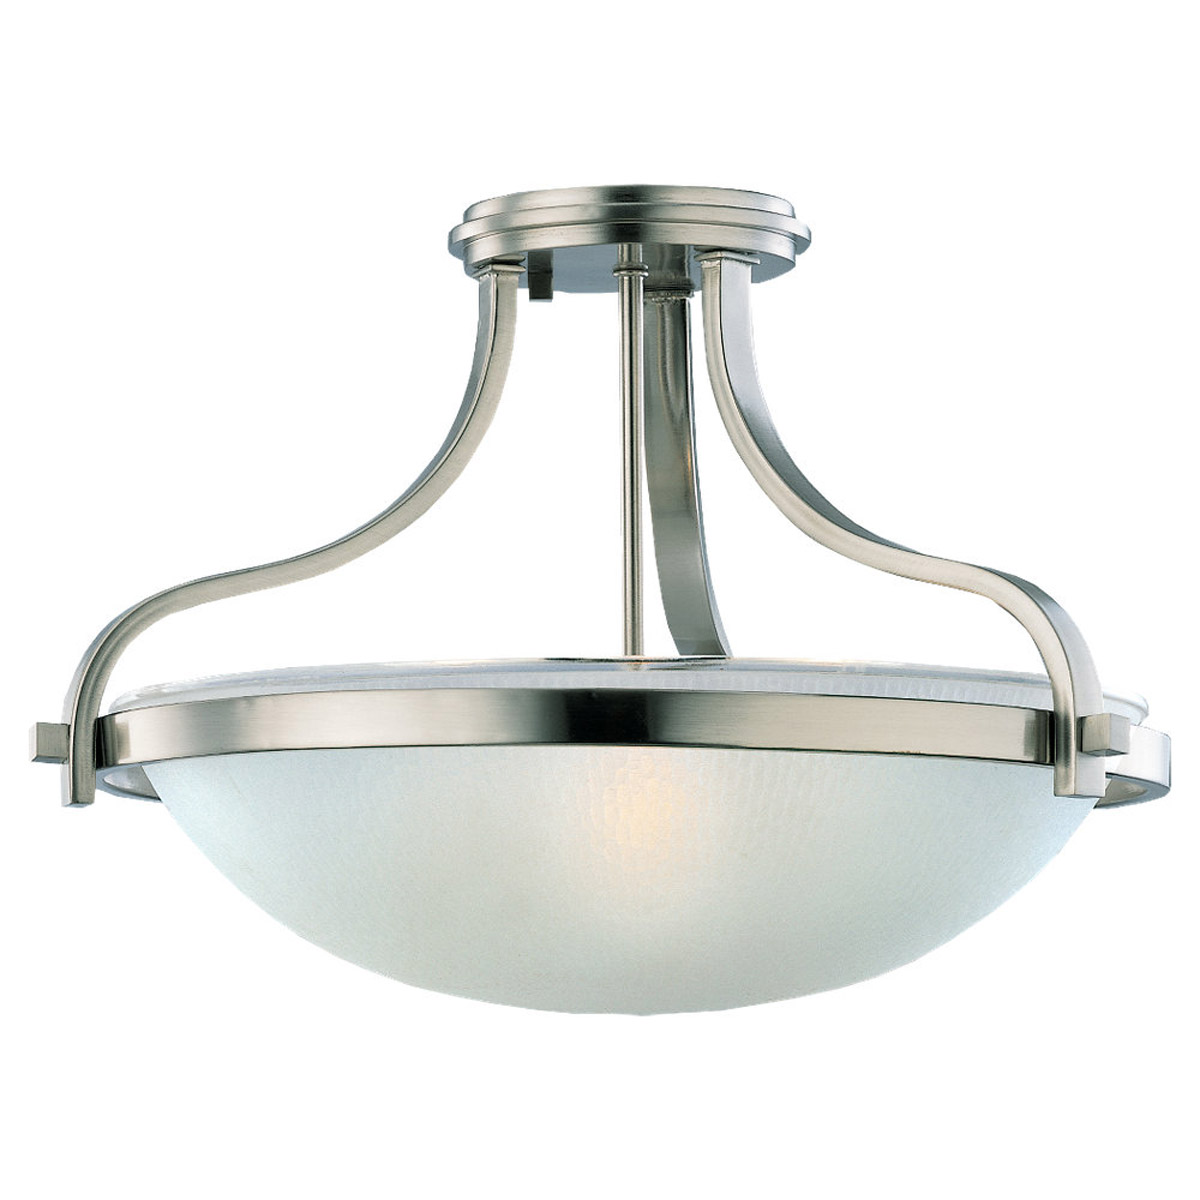 Sea Gull Lighting Eternity 3 Light Flush Mount in Brushed Nickel 77115-962 photo